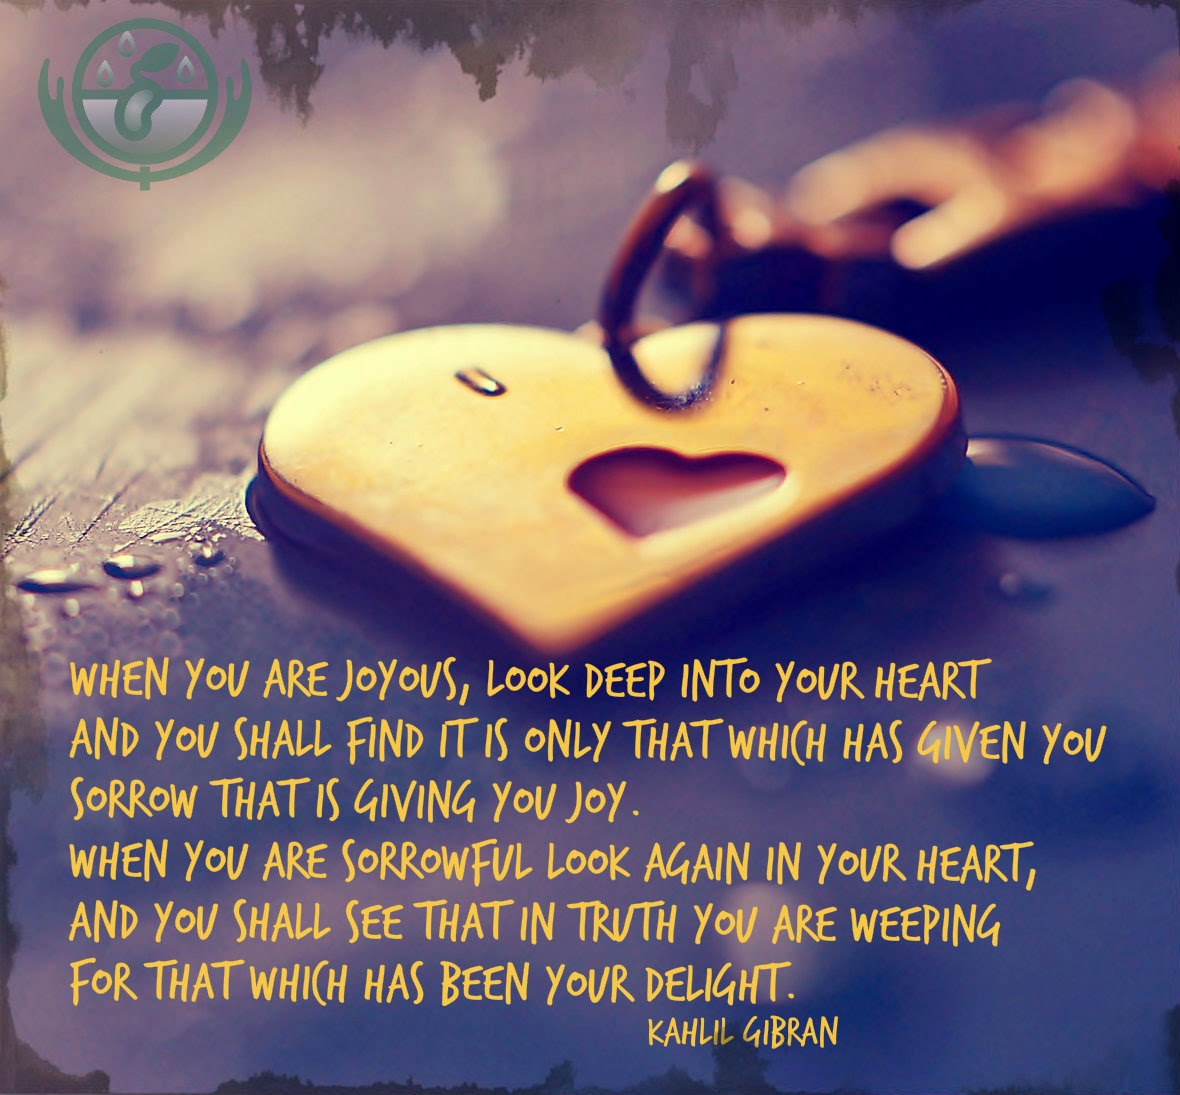 Quotes About Love: Khalil Gibran Love Quotes. QuotesGram